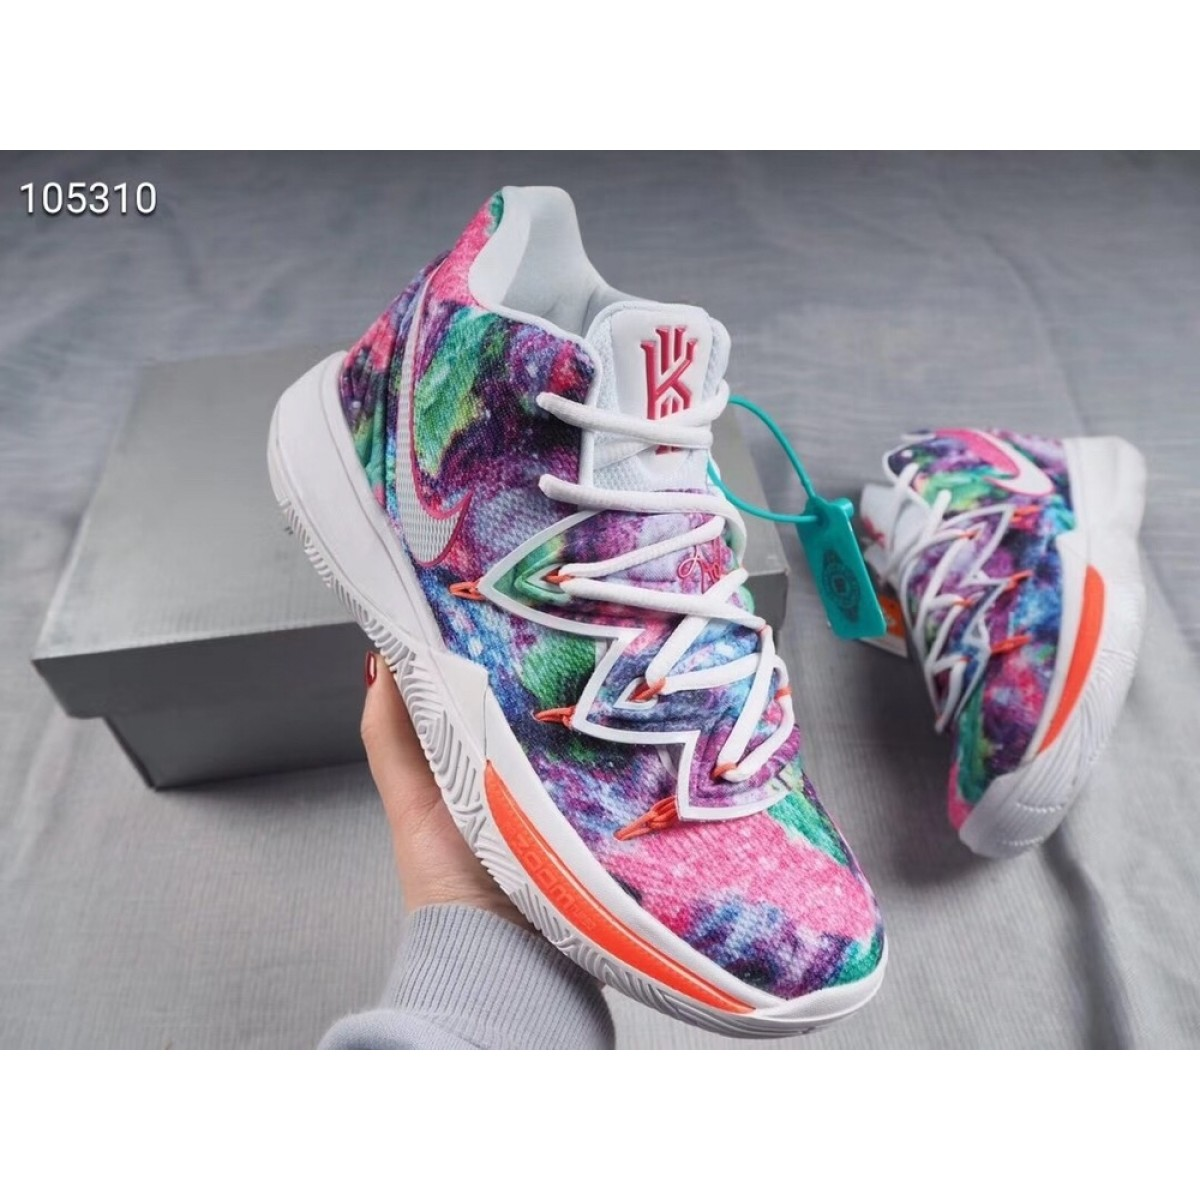 """04b37acd7be7 Nike Kyrie 5 PE """"Neon Blends"""" Shoes"""